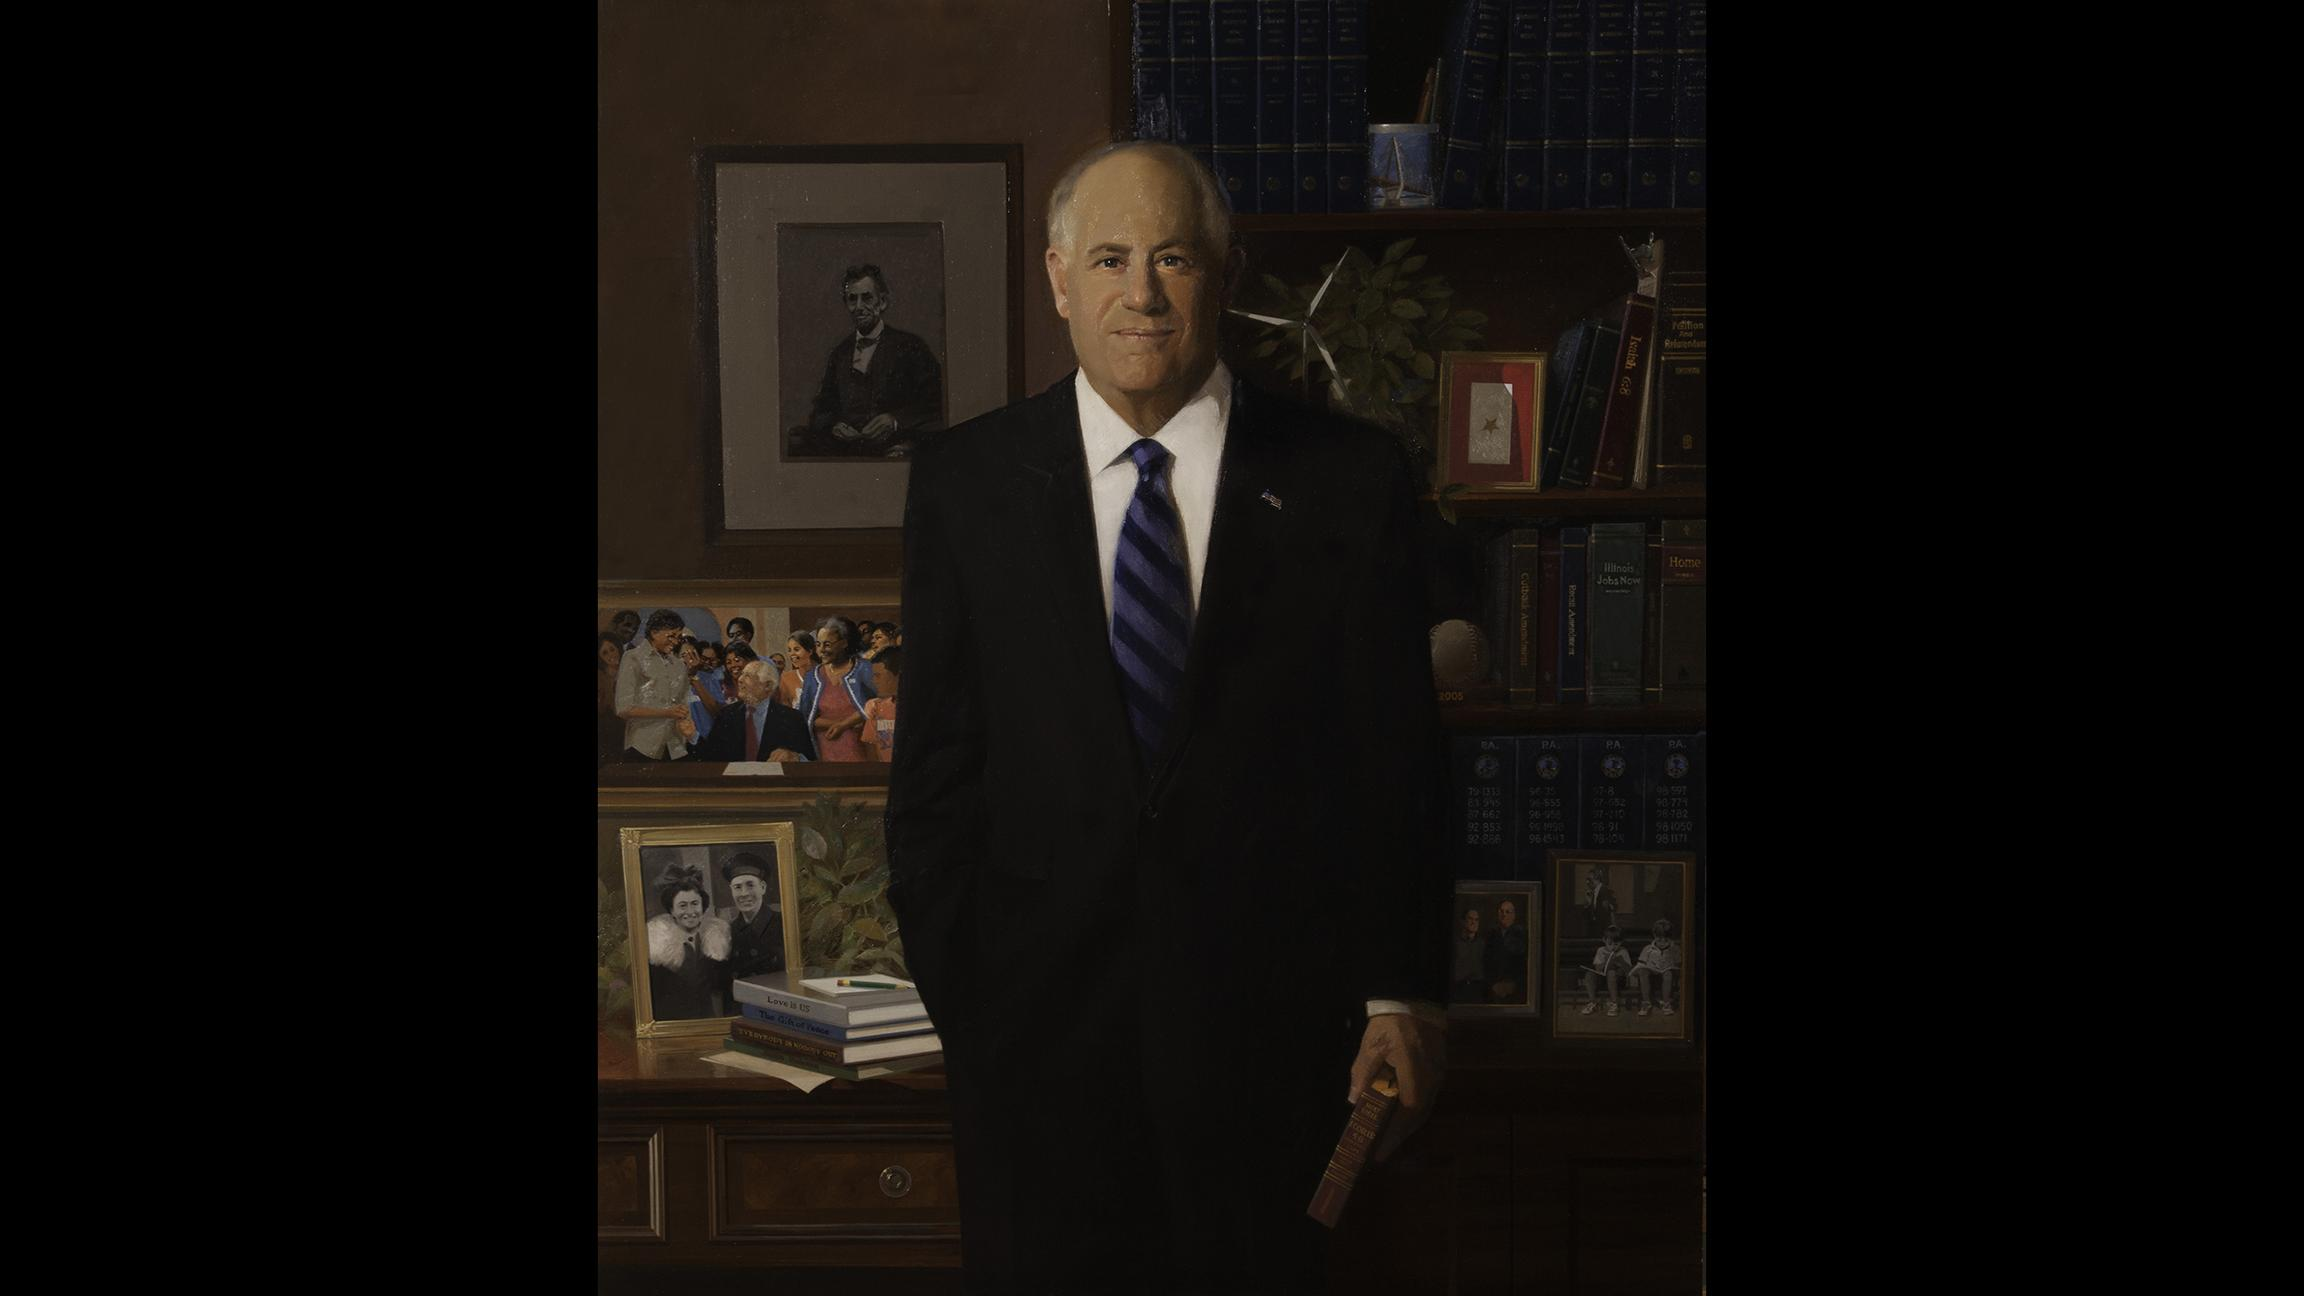 Portrait of former Illinois Gov. Pat Quinn by artist William T. Chambers. (Click to enlarge)